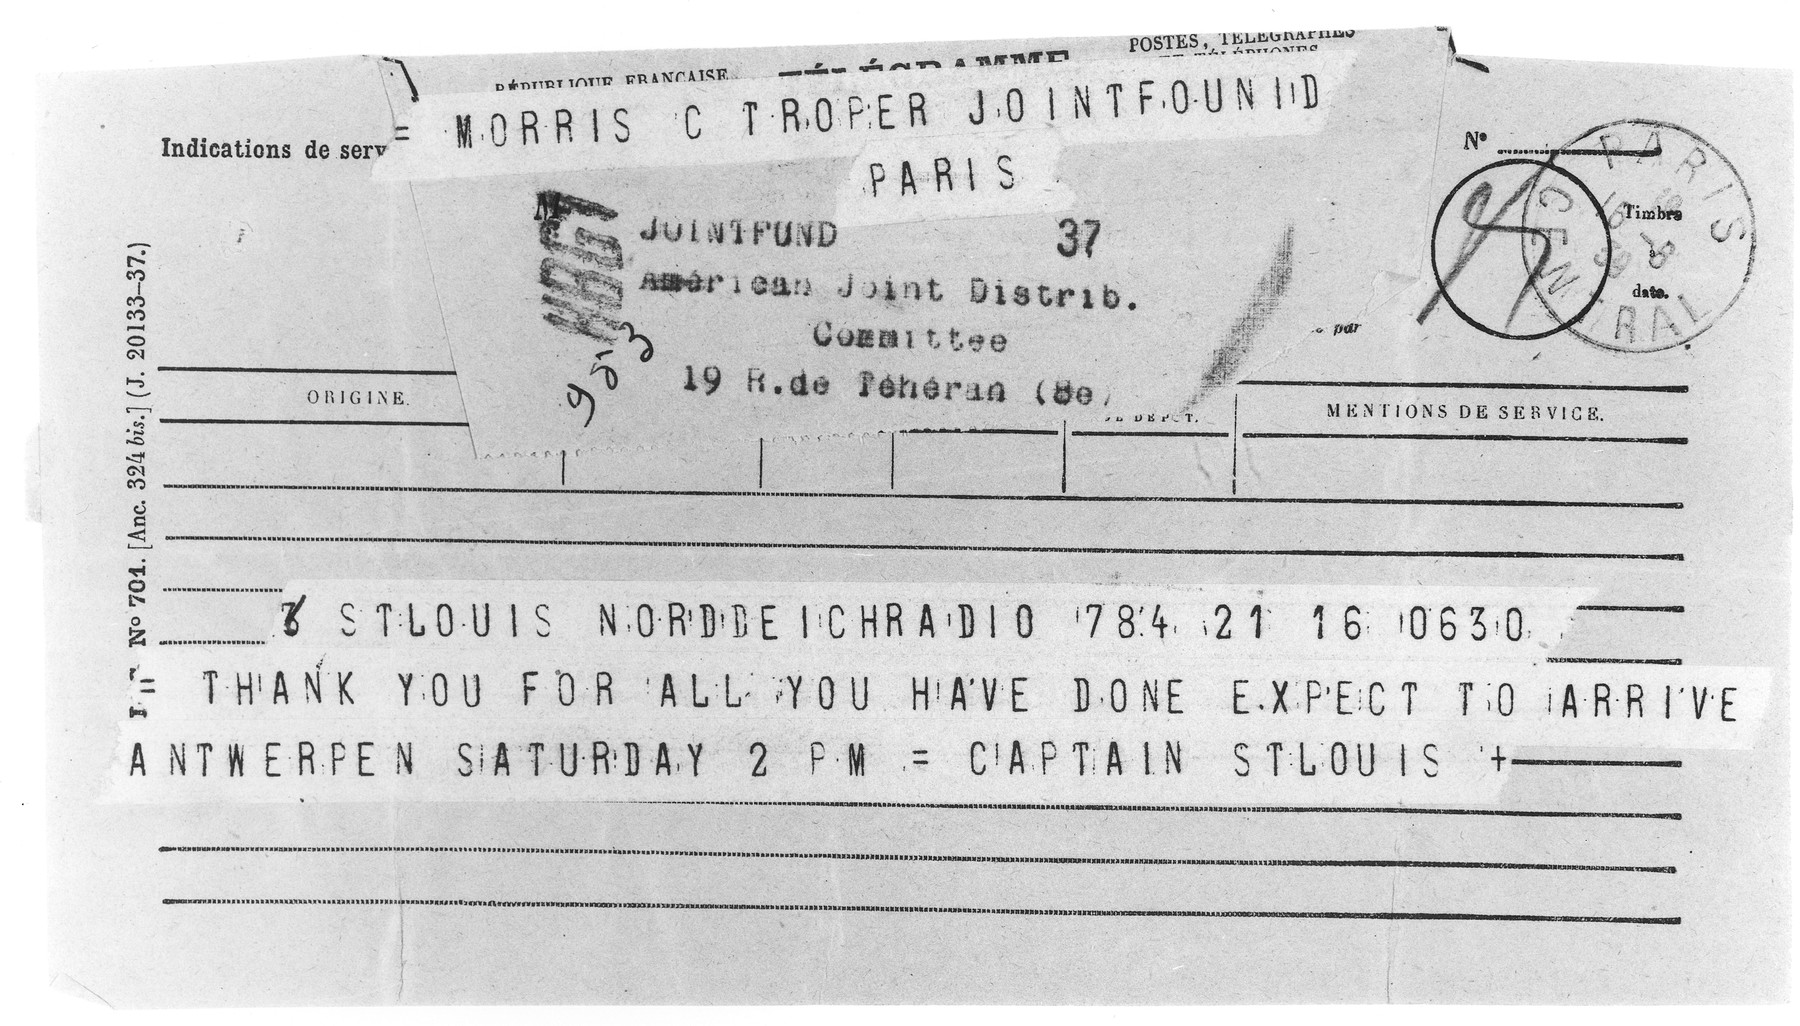 Telegram sent by Gustav Schroeder, captain of the MS St. Louis to JDC European Director Morris Troper in Paris thanking him for all he has done and informing him of the ship's arrival in Antwerp on Saturday at 2:00 pm.